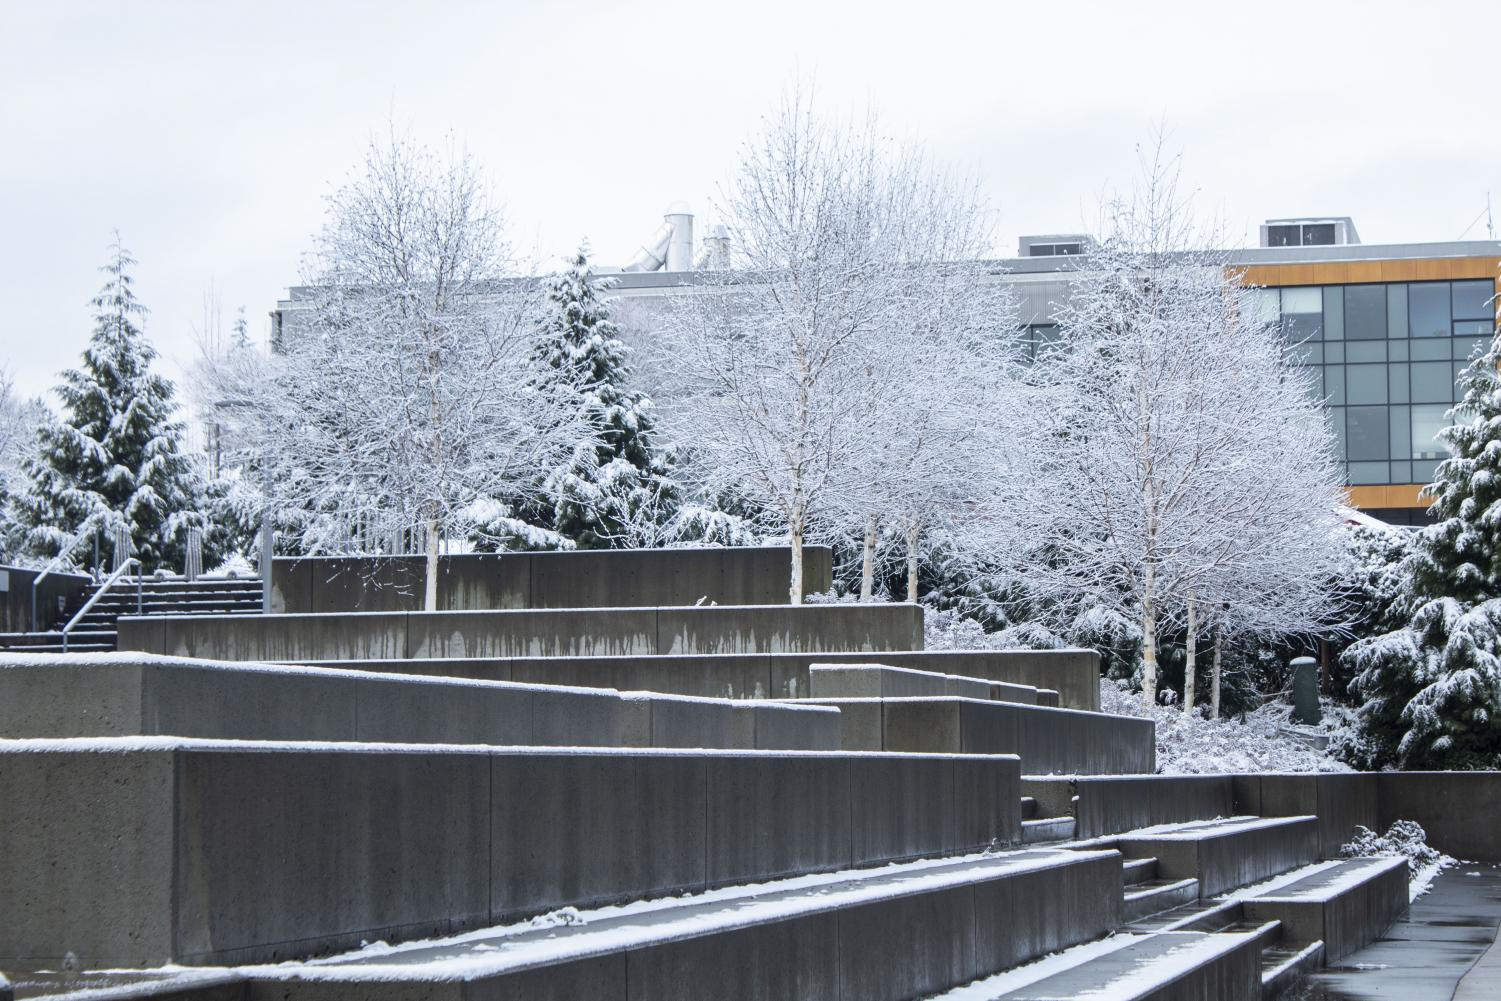 EvCC's Whitehorse Hall covered in a layer of snow on Monday, Jan. 13, 2020, which was the first day of campus closures.